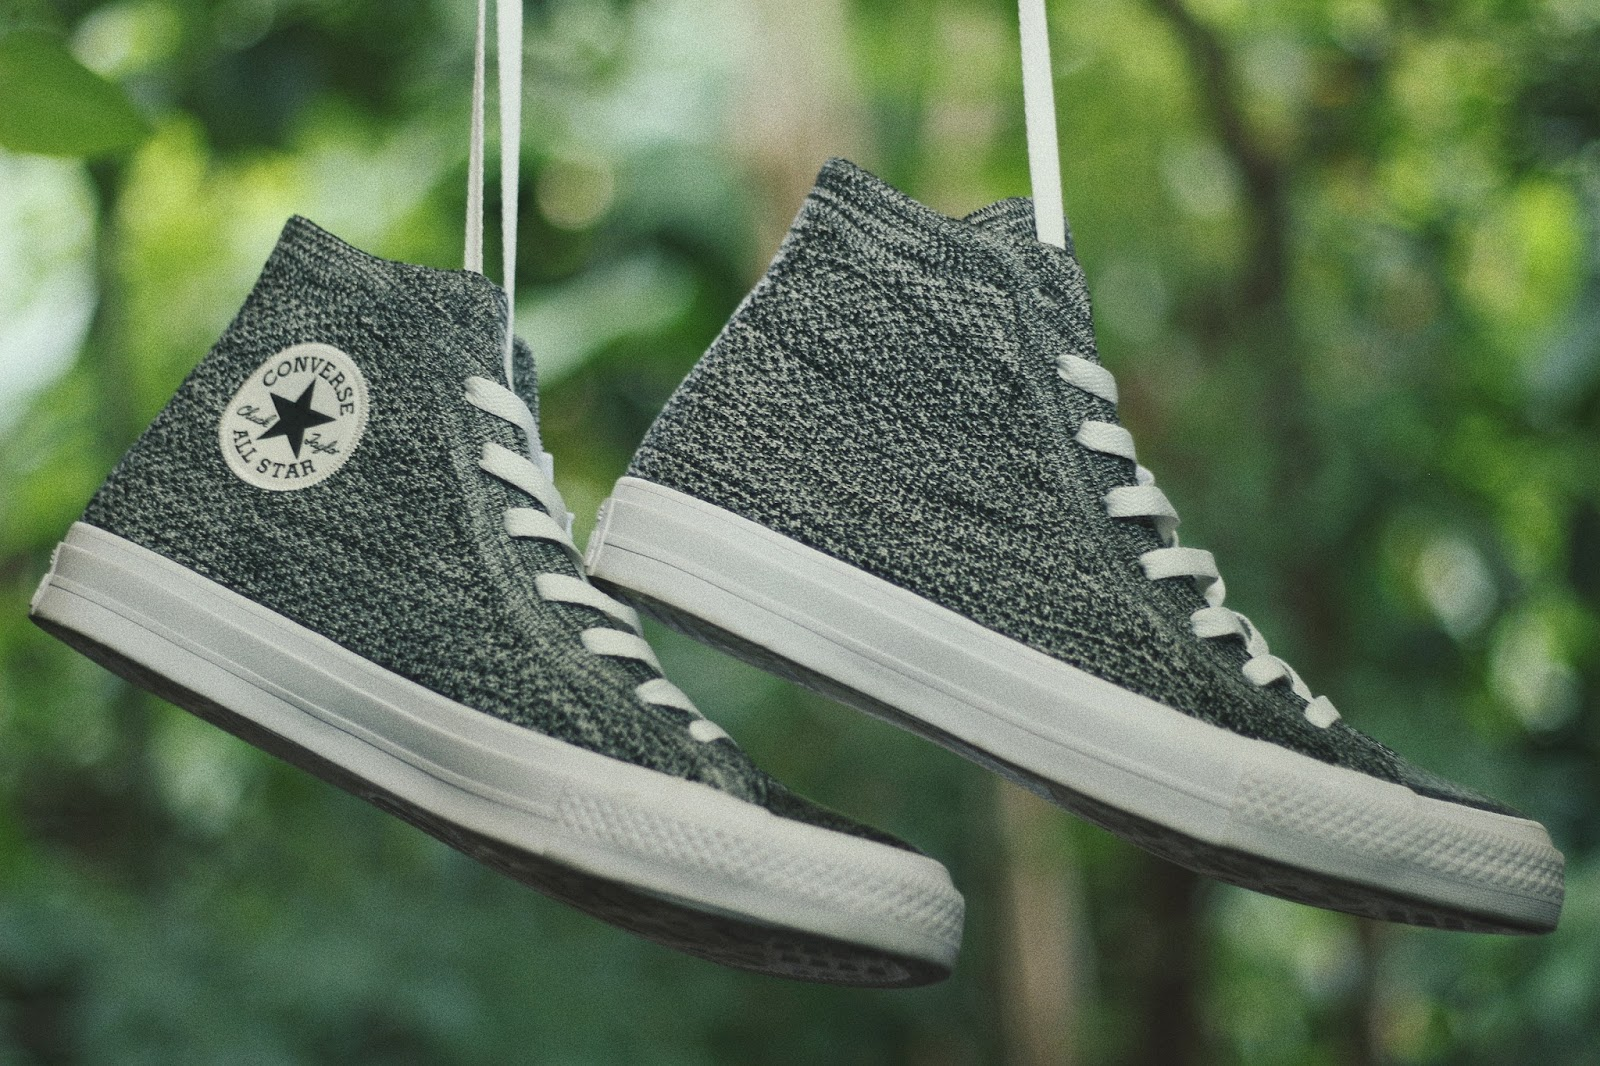 ad5b2546d45d18 Two of my favorite shoe brand Converse x Nike just released a breathable